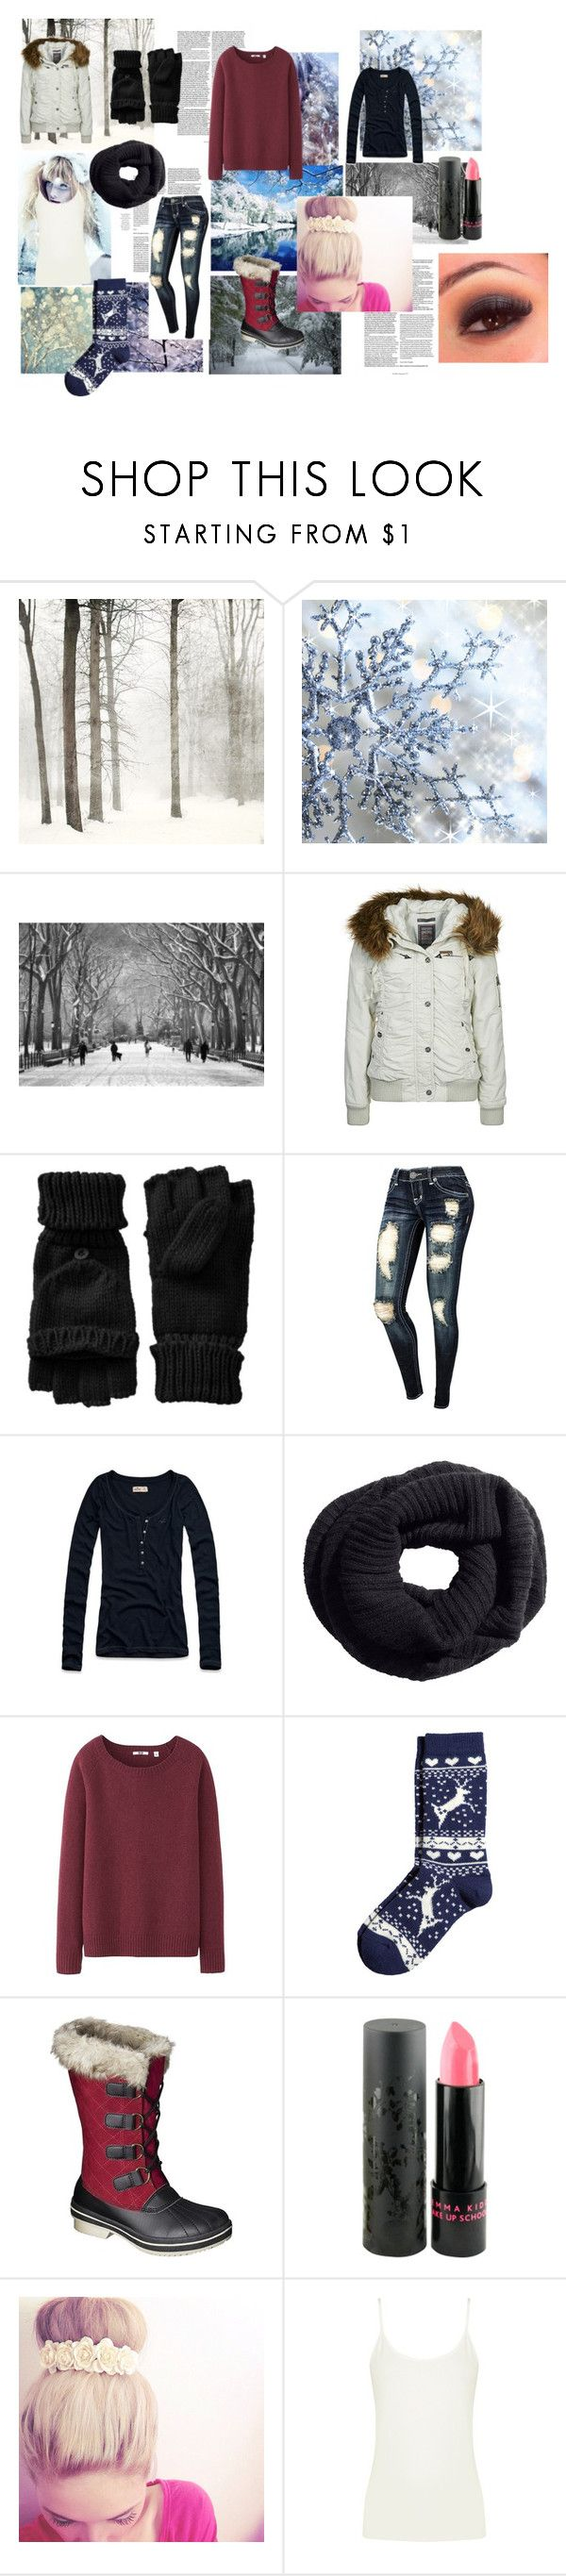 """""""Winter"""" by victoria-nelson-i ❤ liked on Polyvore featuring DreiMaster, Old Navy, Hollister Co., H&M, Uniqlo, Jemma Kidd and Oasis"""